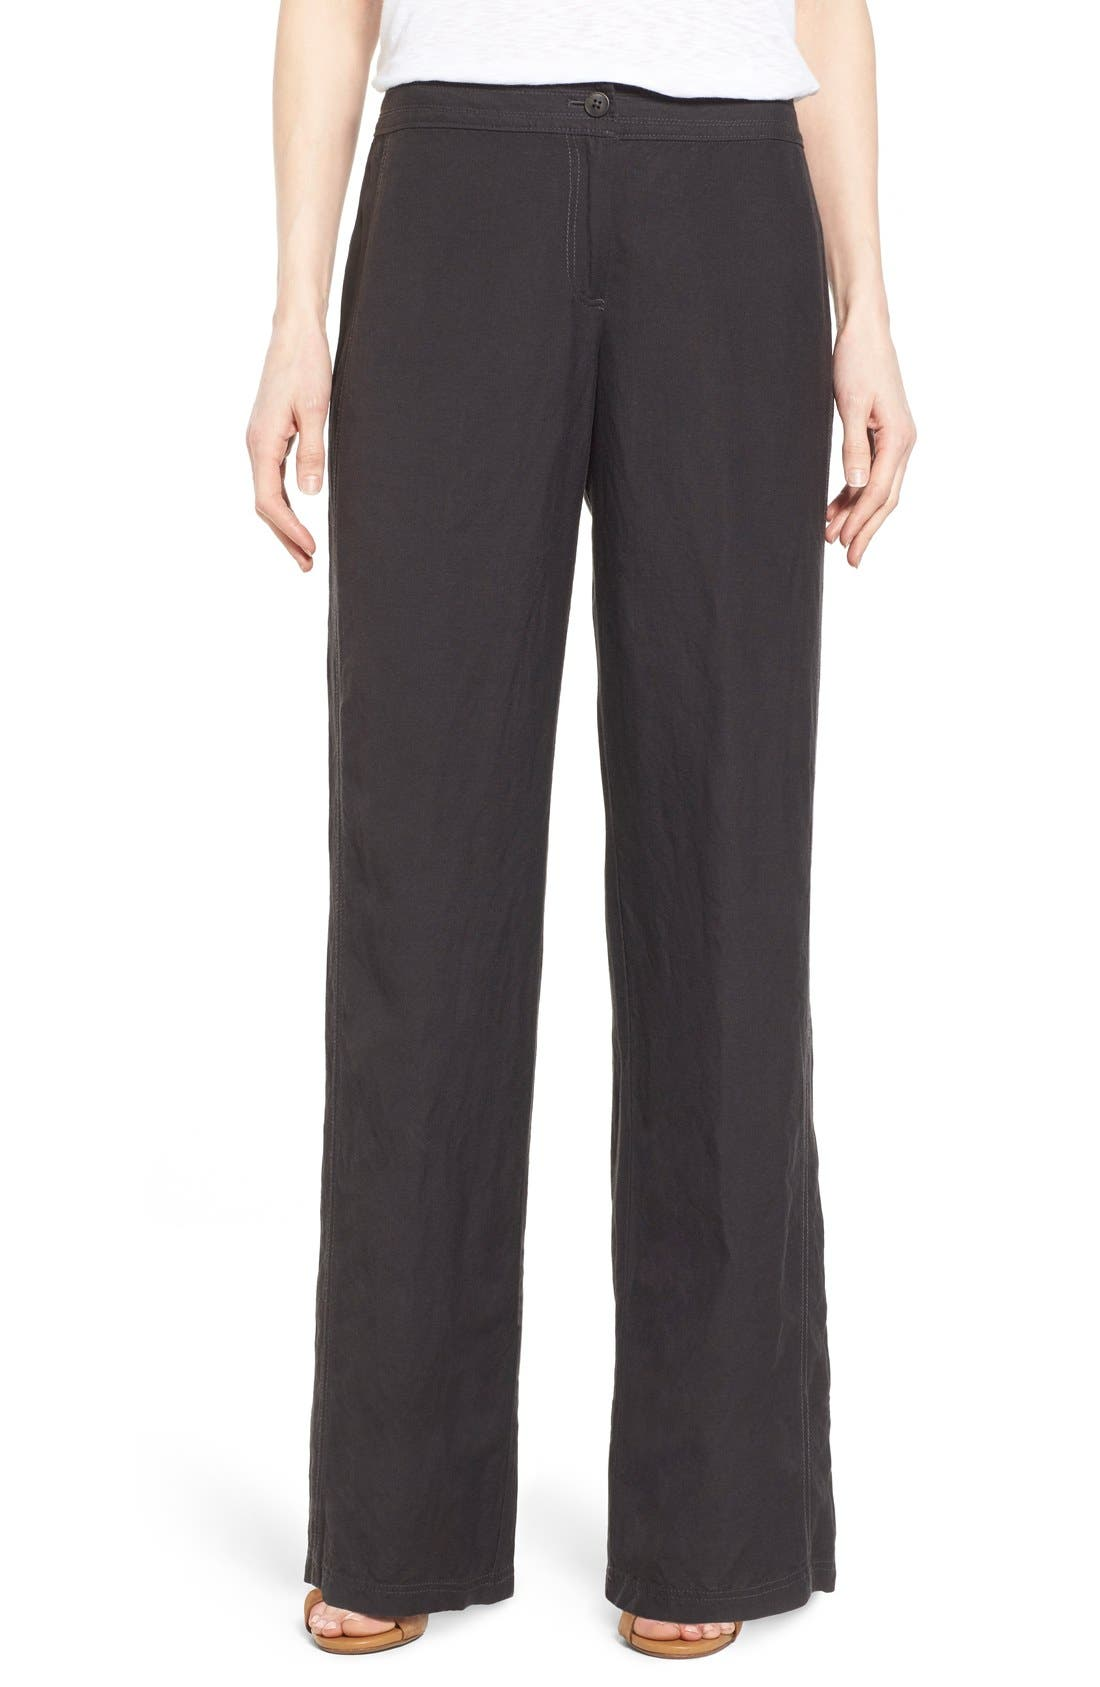 NIC+ZOE 'Easy' Linen Blend Wide Leg Pants